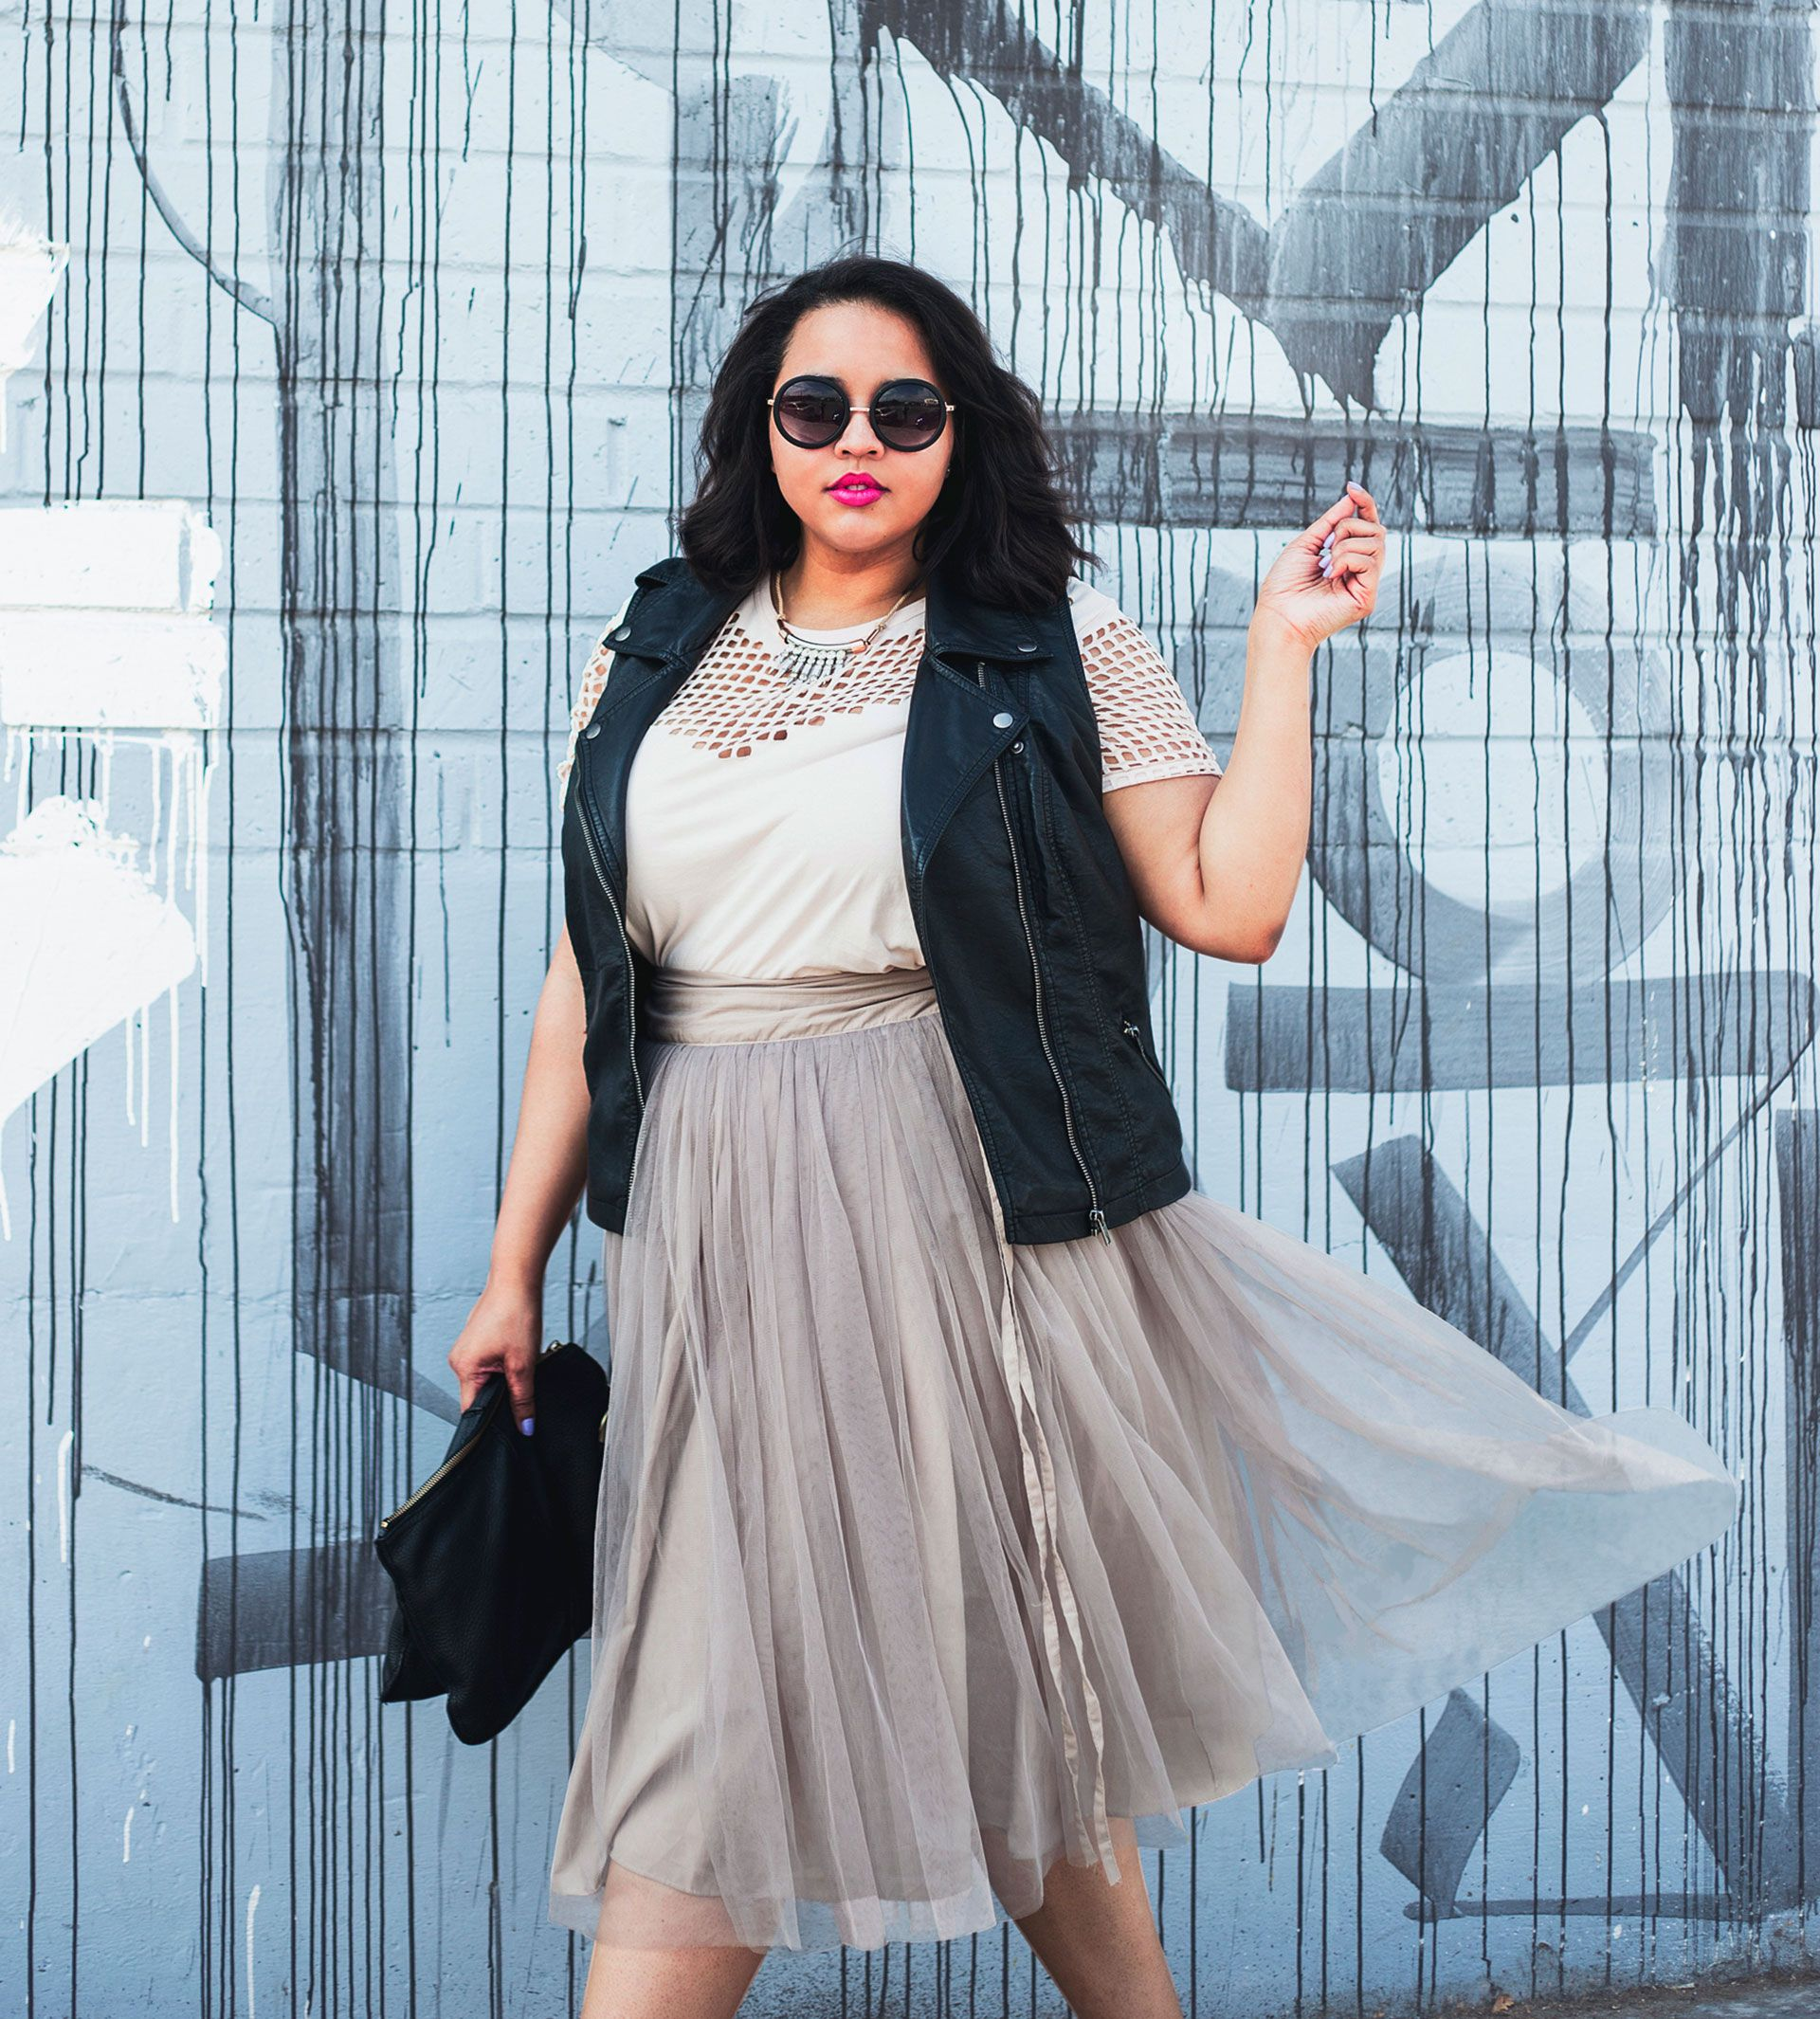 26a4247665ff Curvy? This Is How To Wear the Hottest Trends. Fashion blogger Gabi Gregg  ...